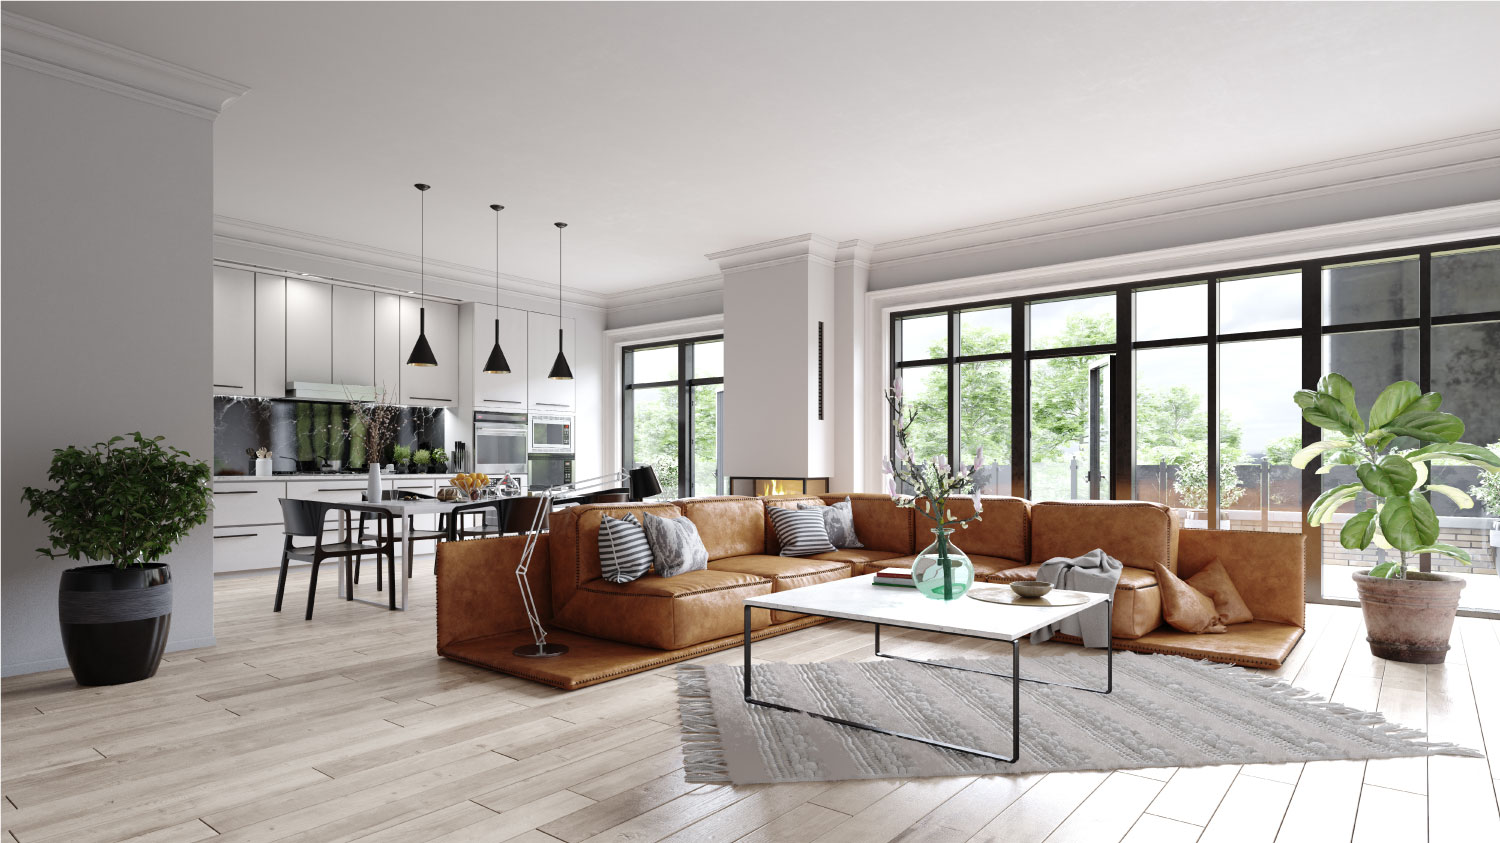 a modern living room with kitchen area and glazed doors to the outside